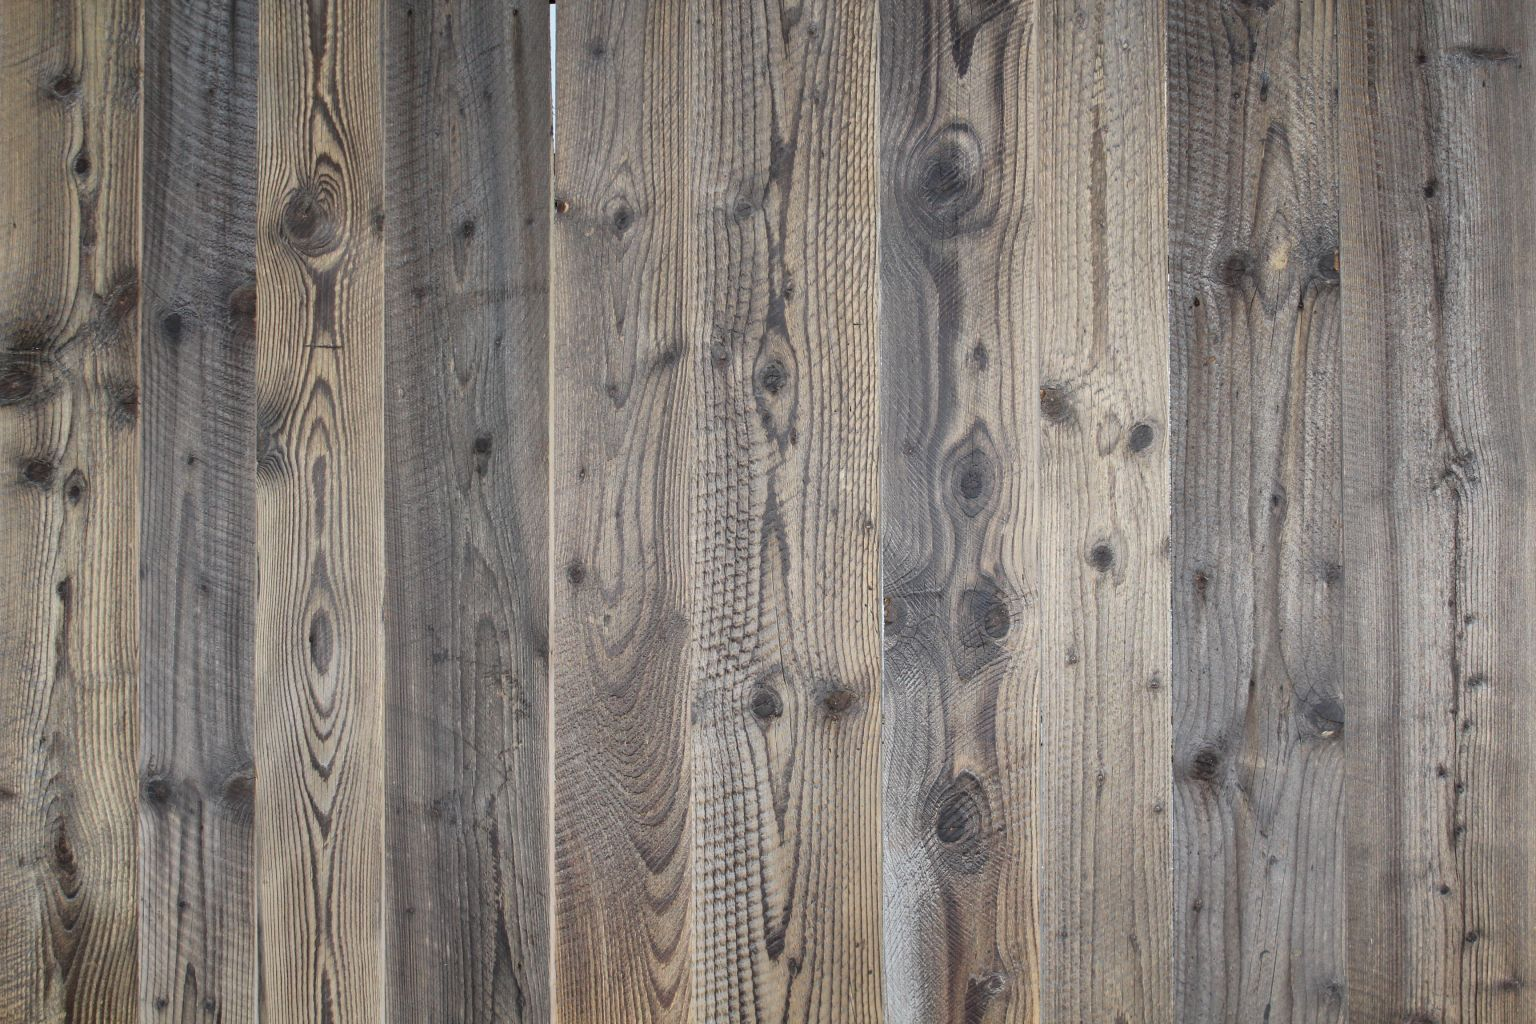 Reclaimed Slow Growth Pine Wall Cladding Surface Brushed